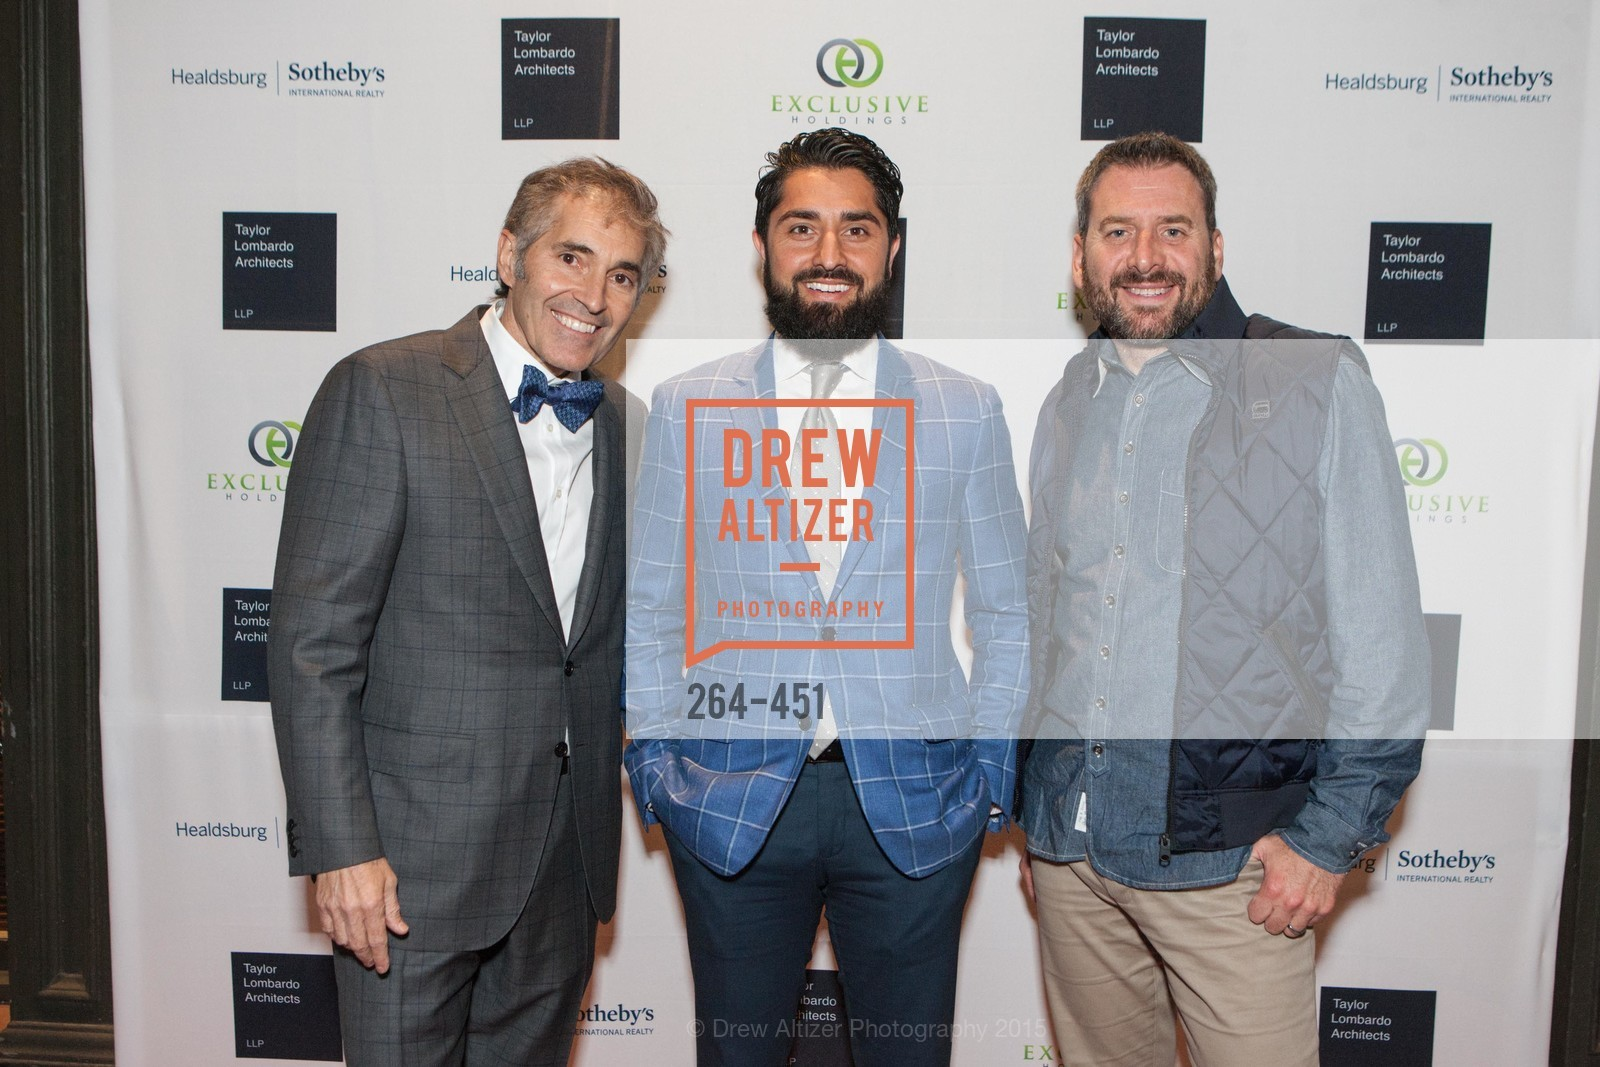 Maurice Lambardo, Roh Habibi, Jay Bakaler, Healdsburg Dream Estates Cocktail Party, Taylor Lombardo. 40 Hotaling Place, November 5th, 2015,Drew Altizer, Drew Altizer Photography, full-service agency, private events, San Francisco photographer, photographer california